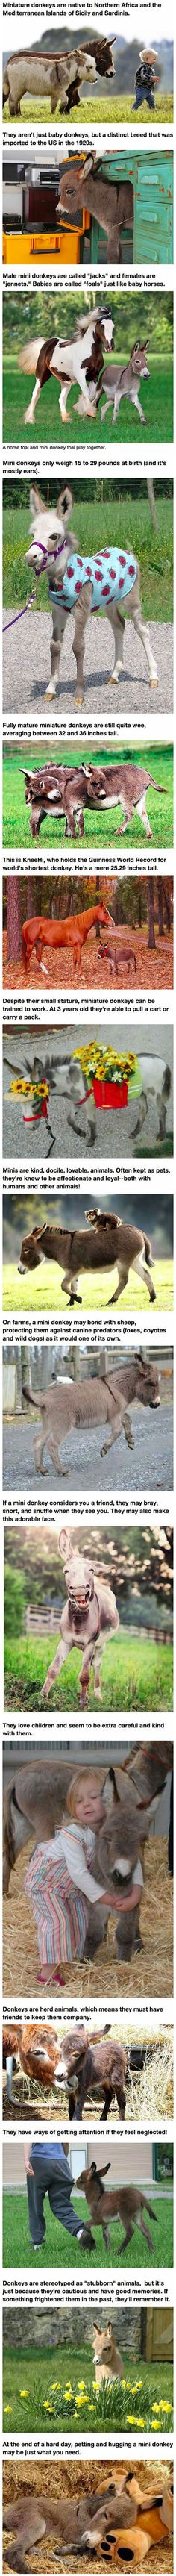 Mini donkeys are the perfect pets...